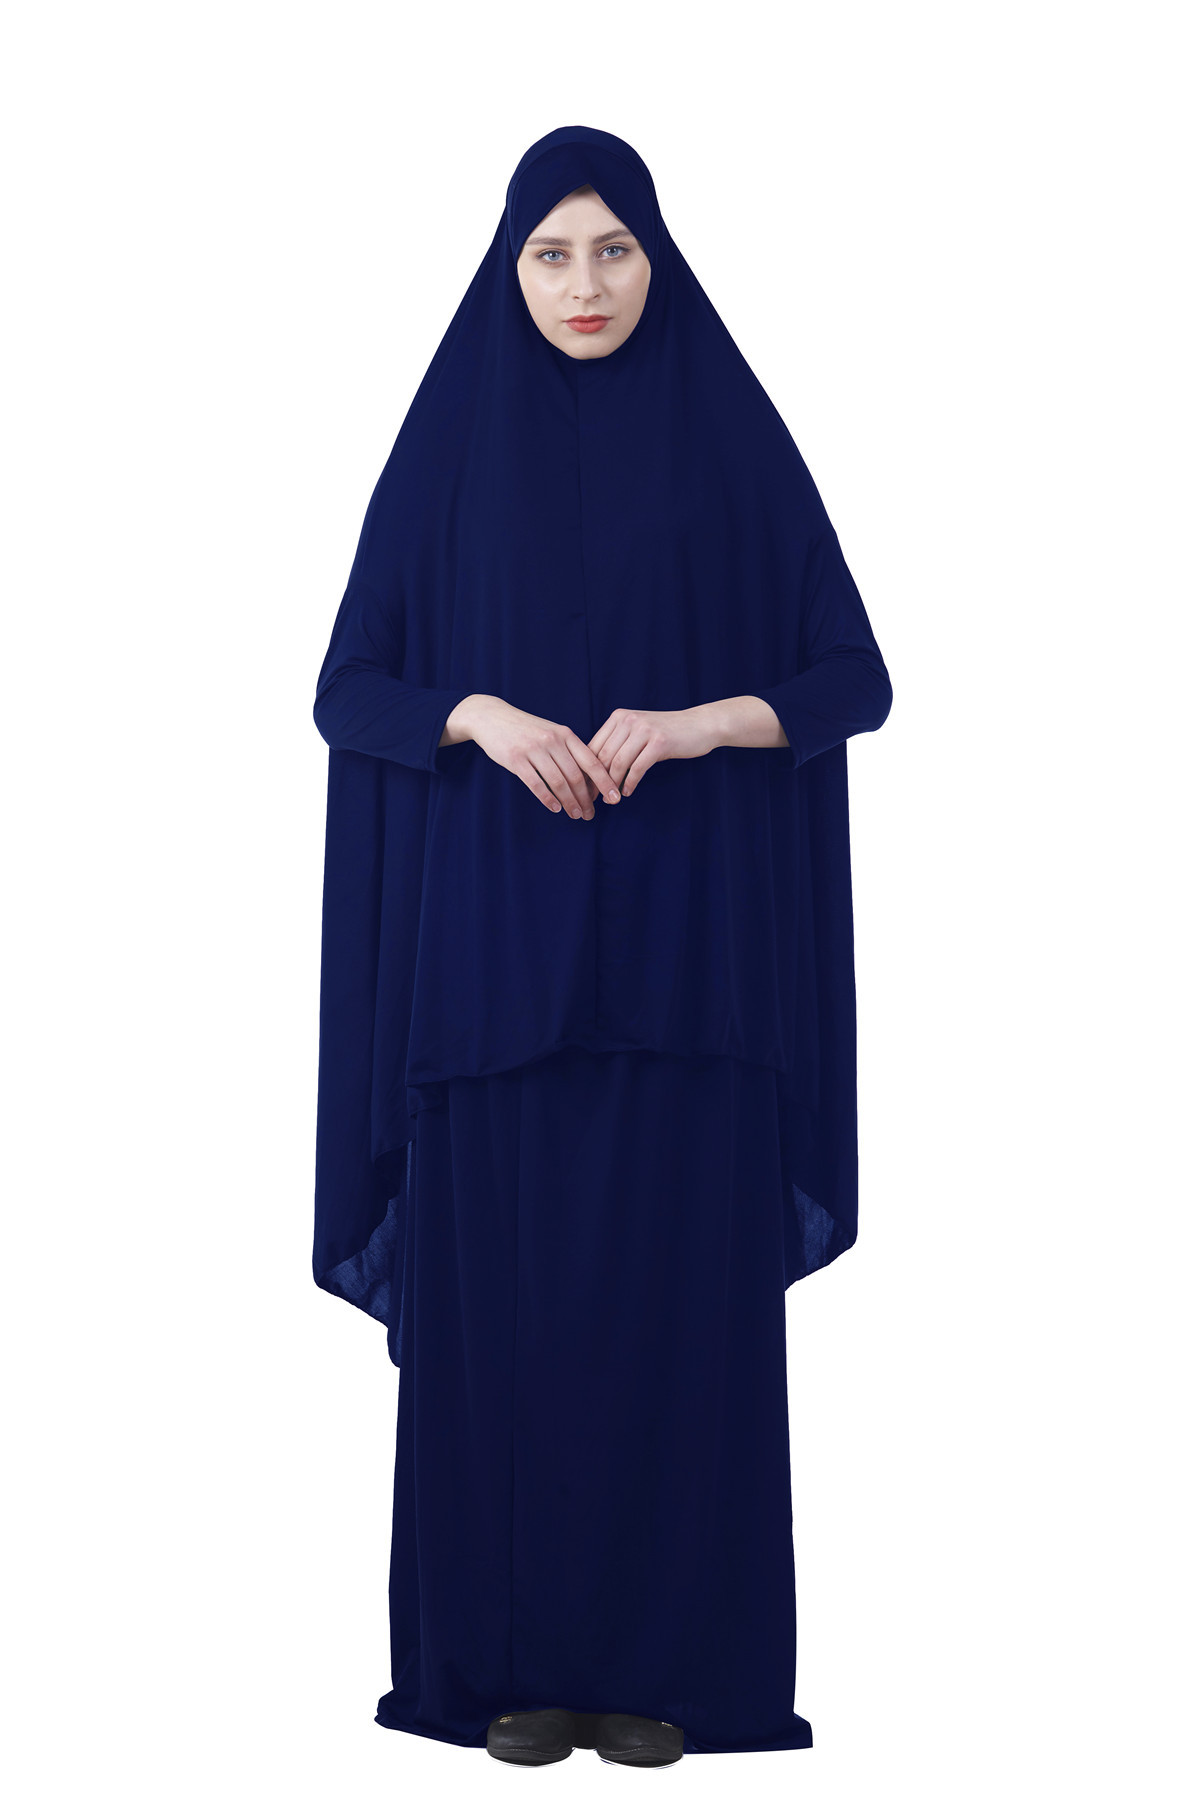 Image 3 - Formal Muslim Prayer Garment Sets Women Hijab Dress Abaya Islamic